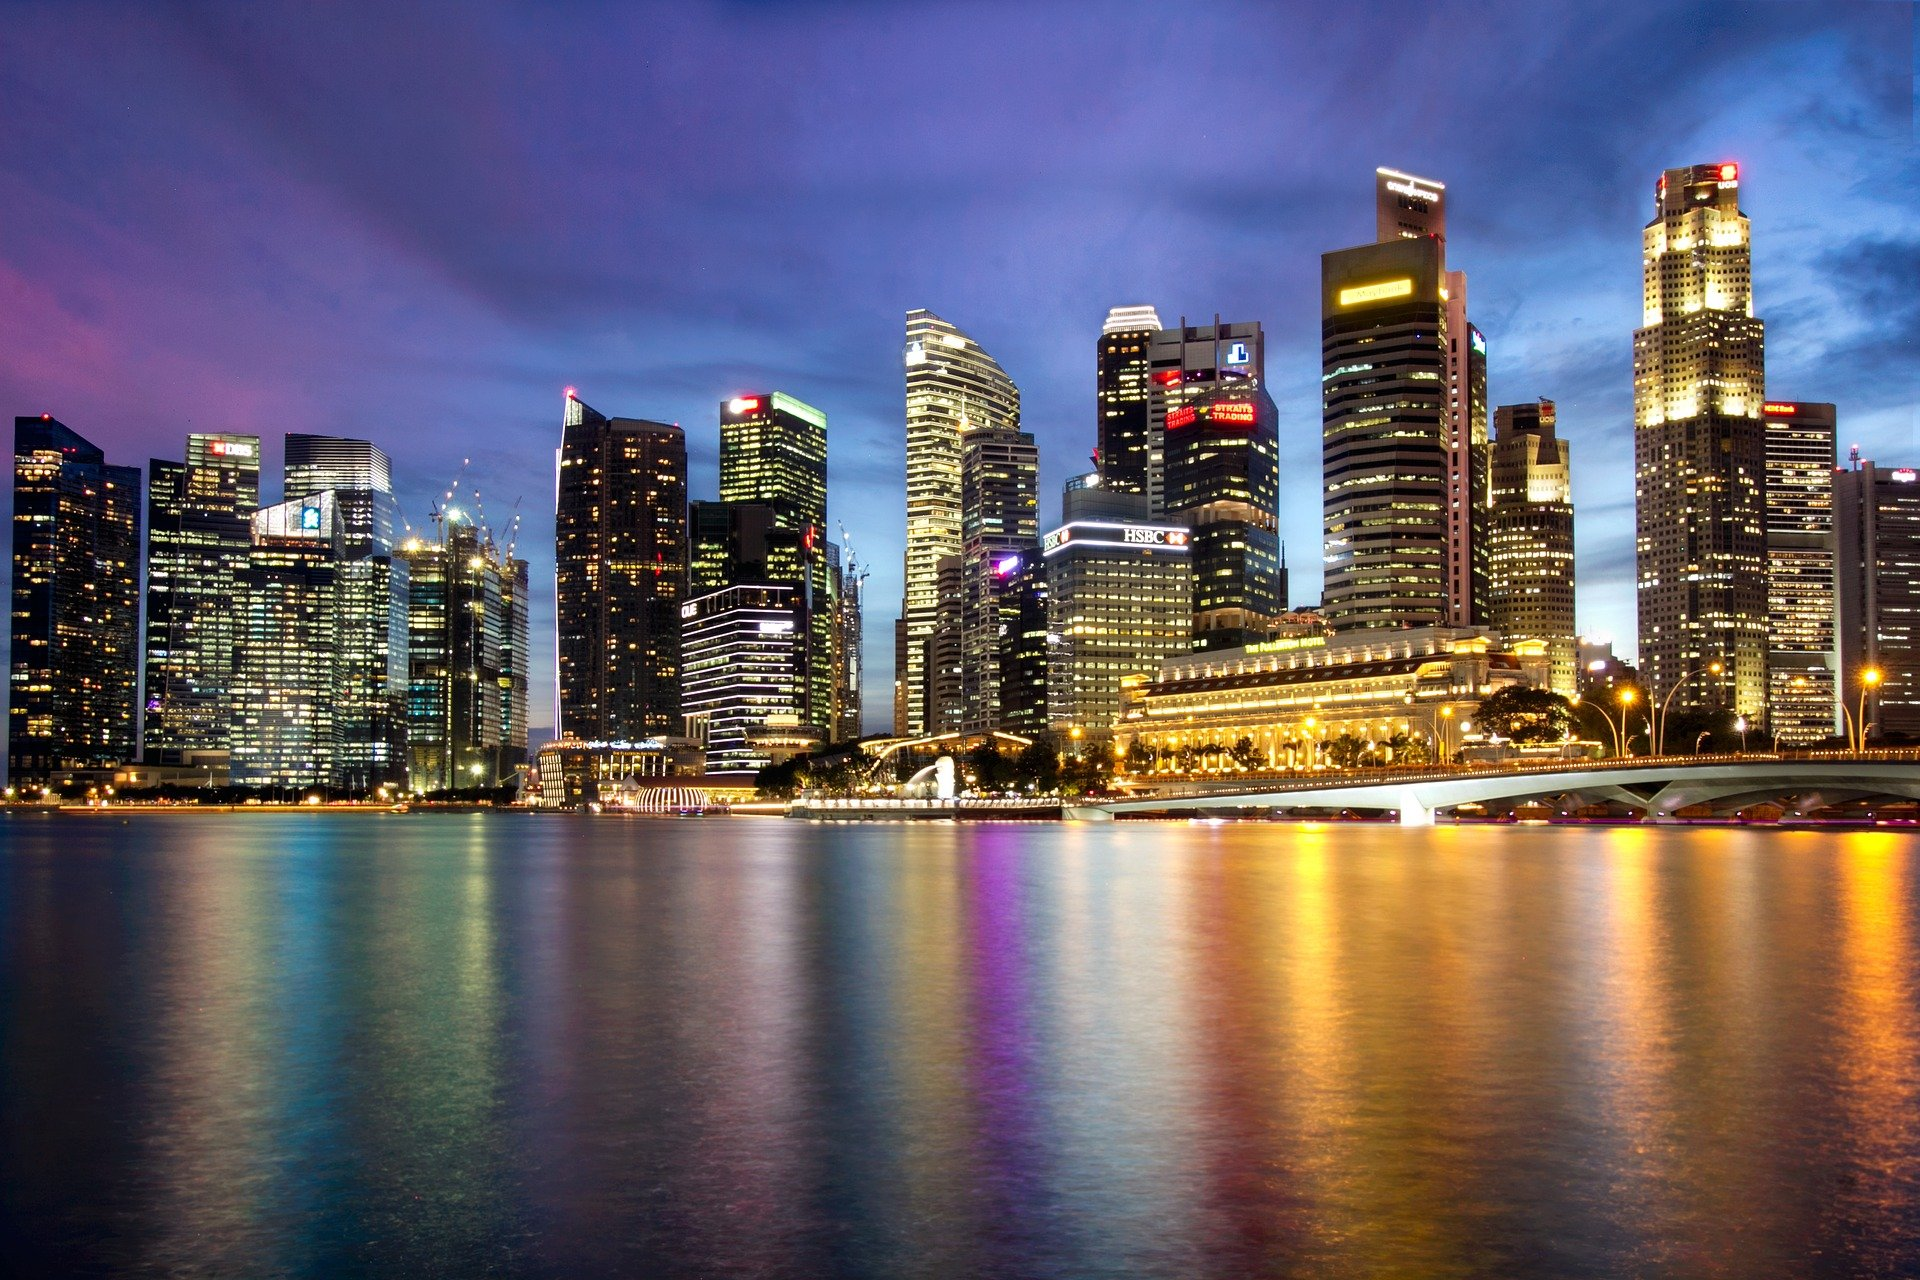 Singapore data center market shows signs of saturation - DCD